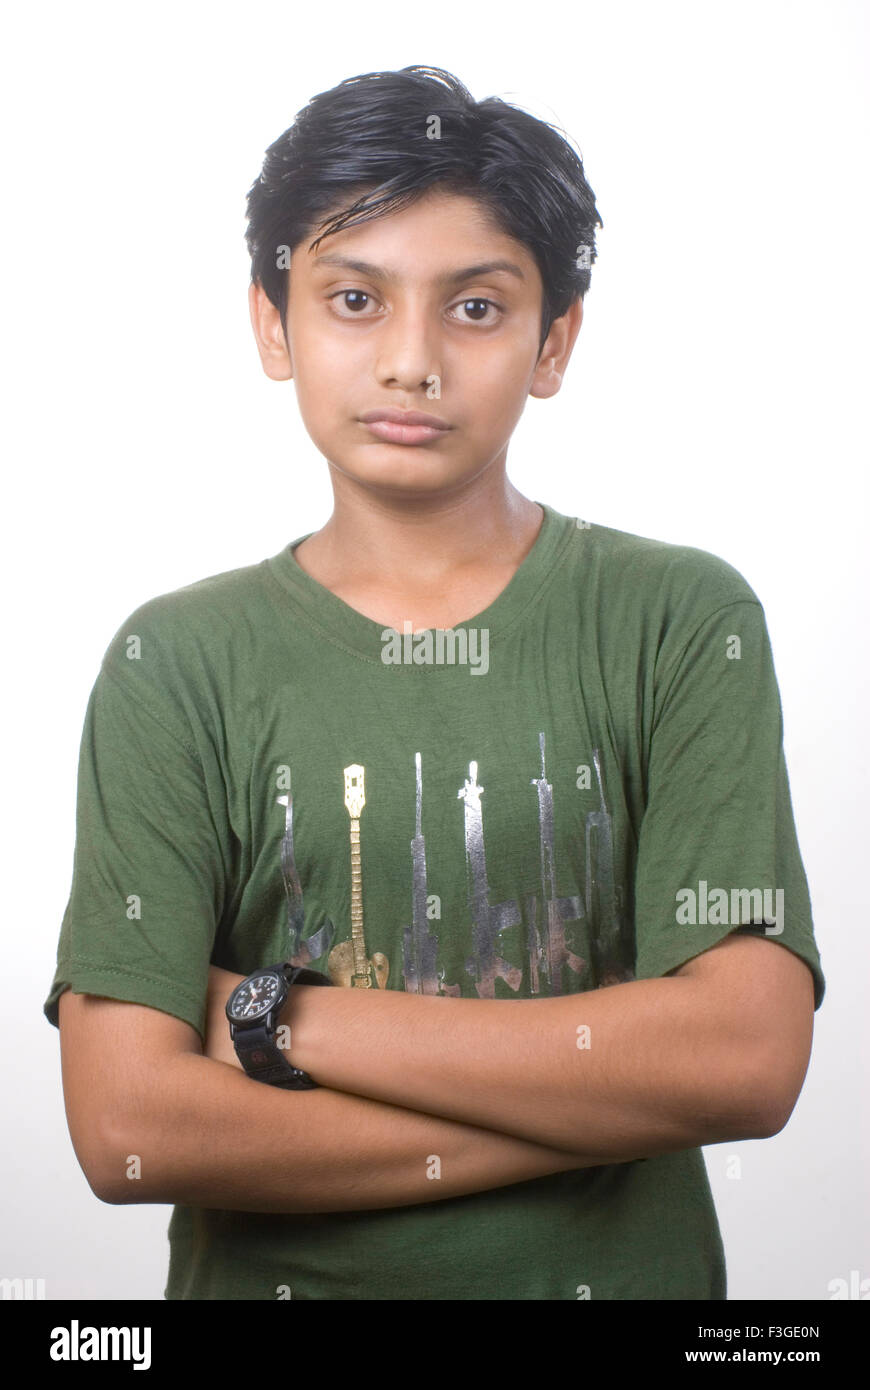 Teenager boy standing with crossed hands MR#733 - Stock Image